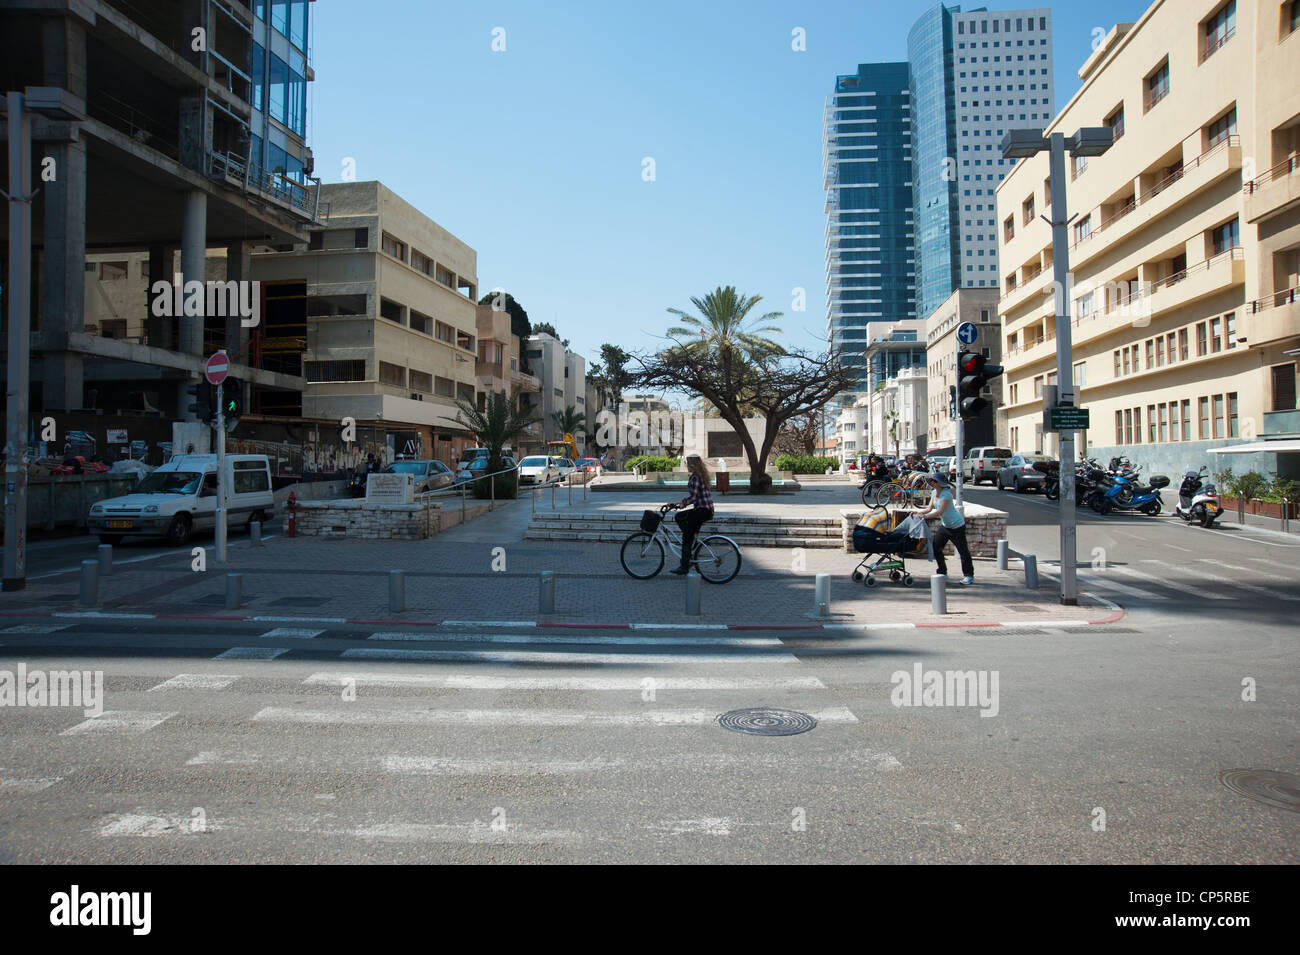 Israel, Tel Aviv, Founders Square Rothschild Boulevard. In memory of the 69 people who founded Tel Aviv in 1909 - Stock Image